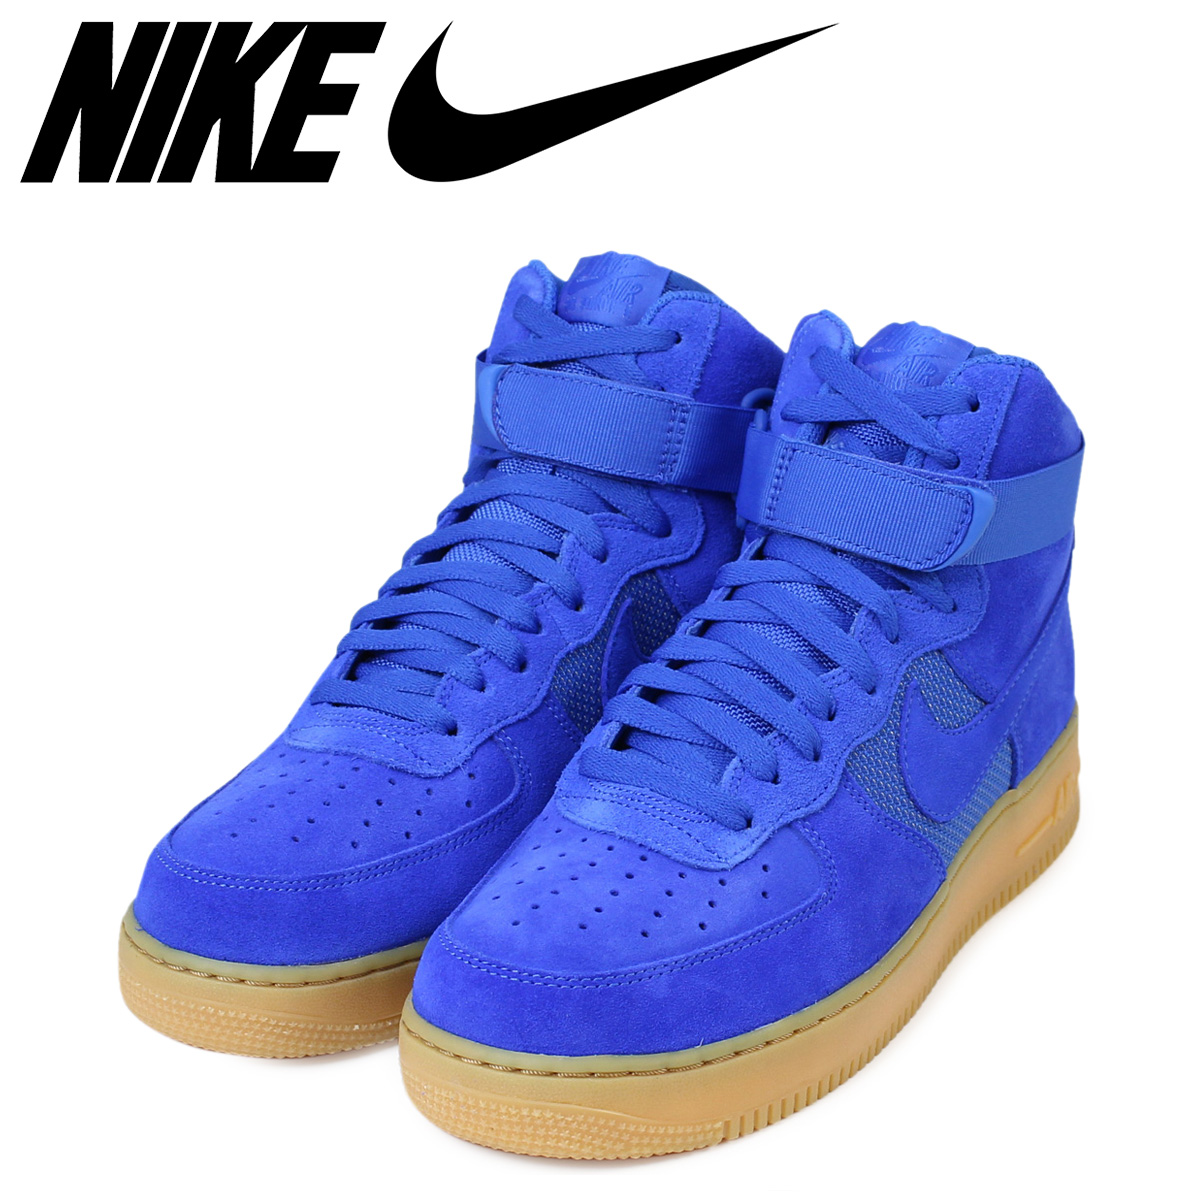 Whats up Sports  Nike NIKE air force men sneakers AIR FORCE 1 HIGH  07 LV8  806 0b84dff44f